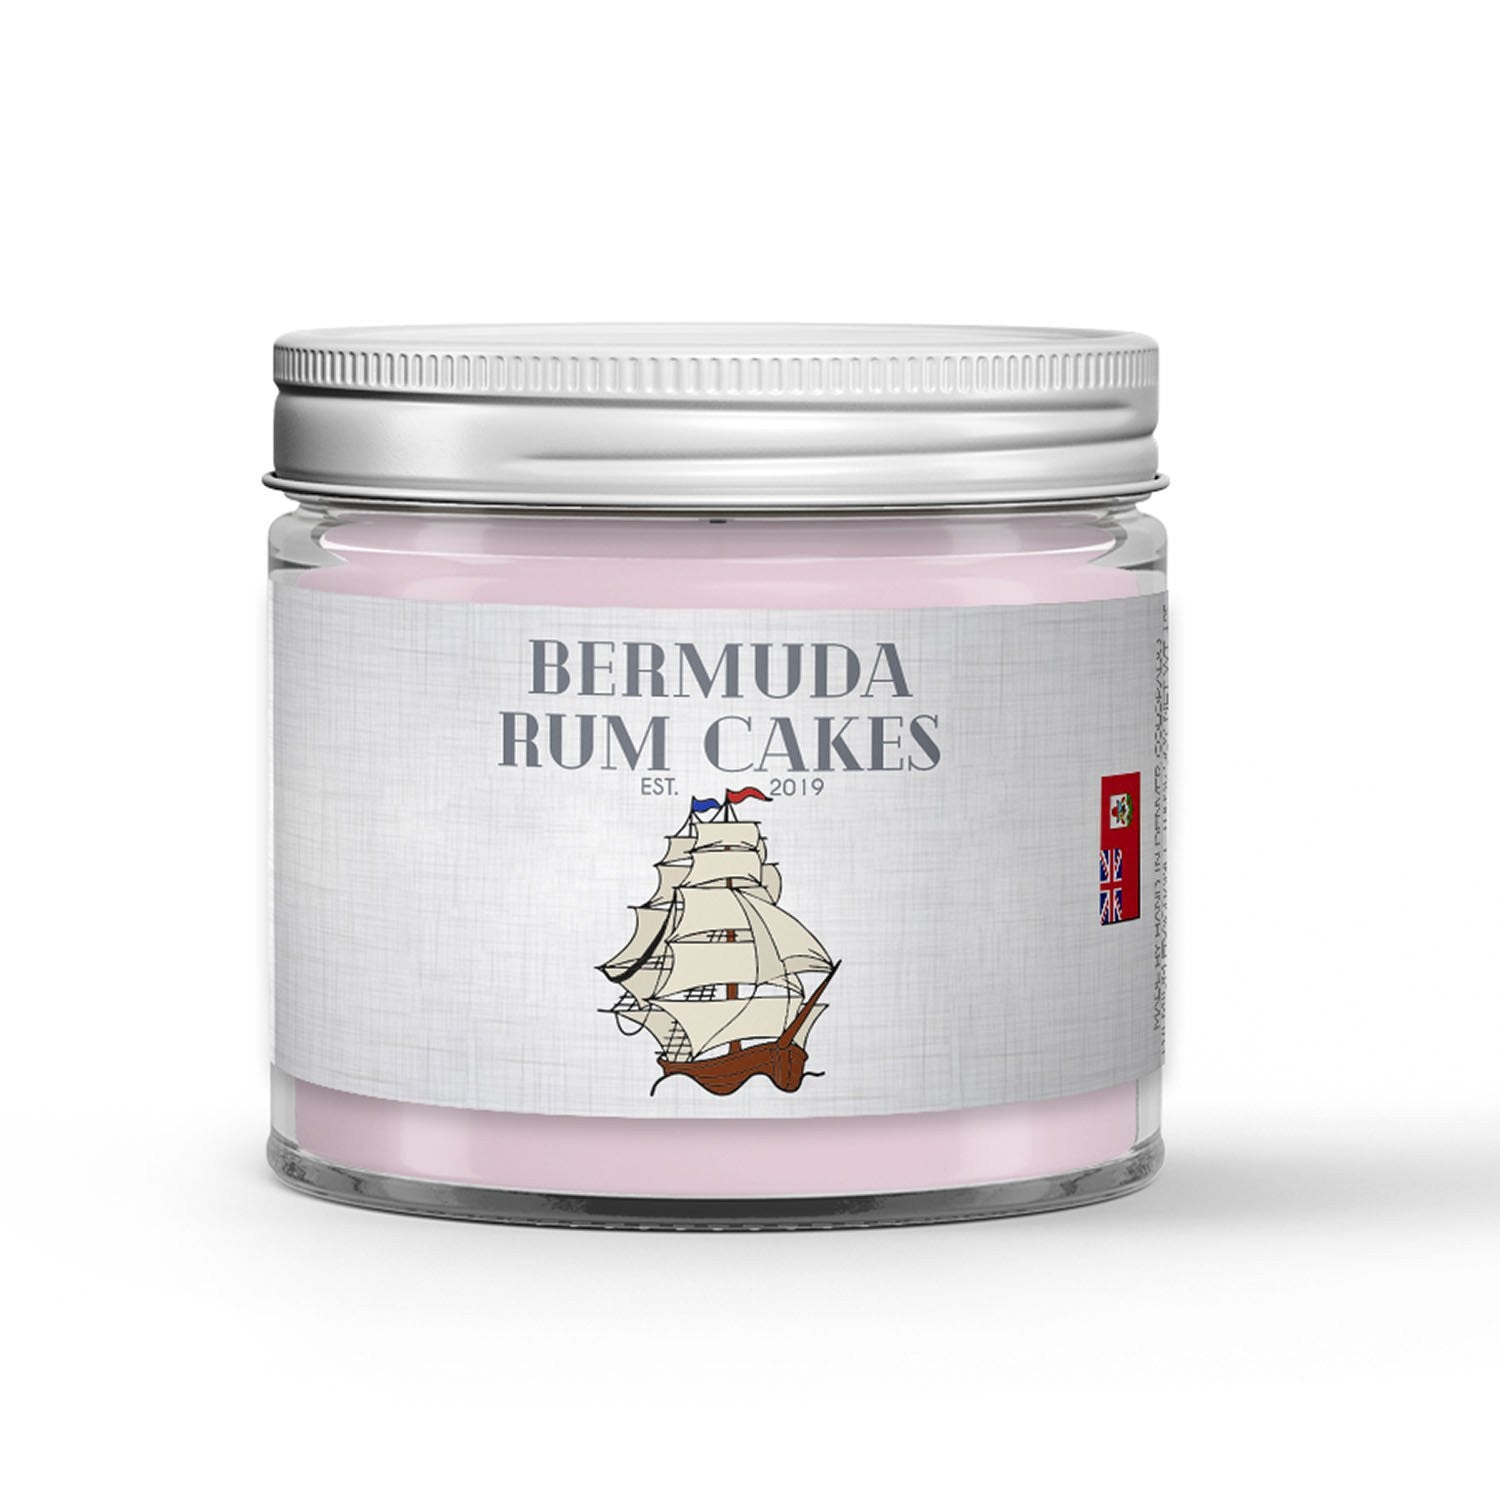 Bermuda Rum Cakes Candle - Black Seal Rum - Royal Icing - Cake - Sea Salt - 1oz Adorable Size Candle® - Dio Candle Company